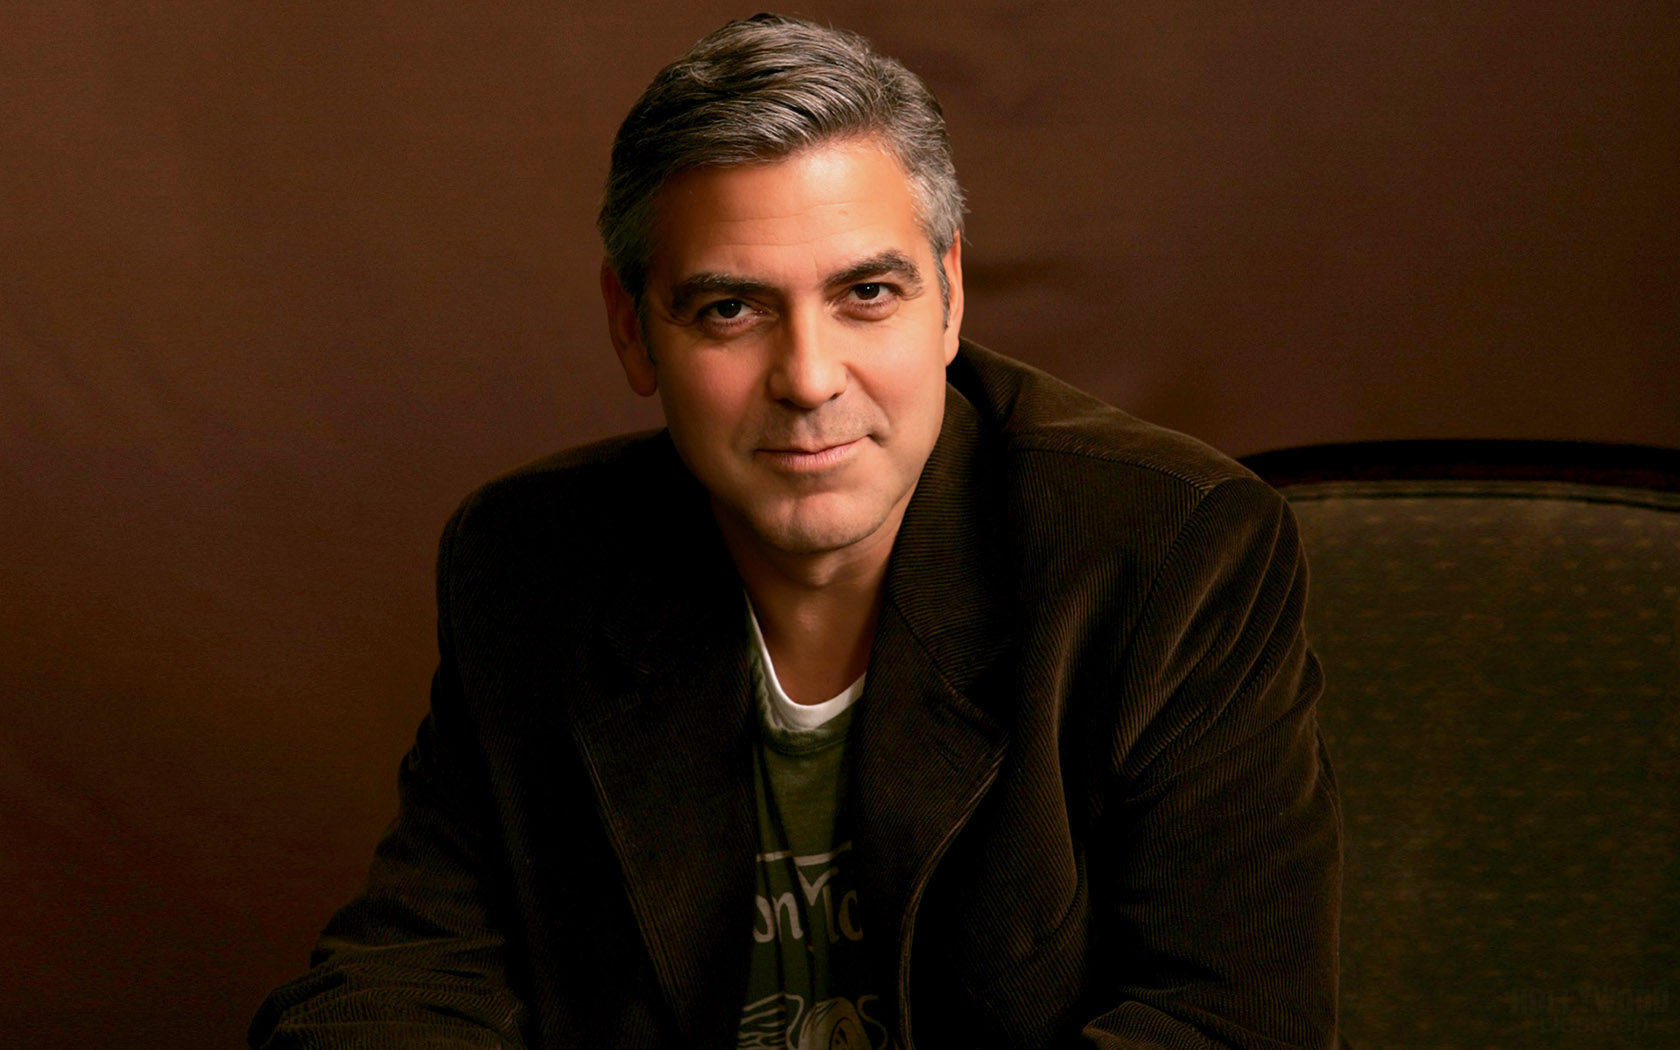 george clooney - photo #30